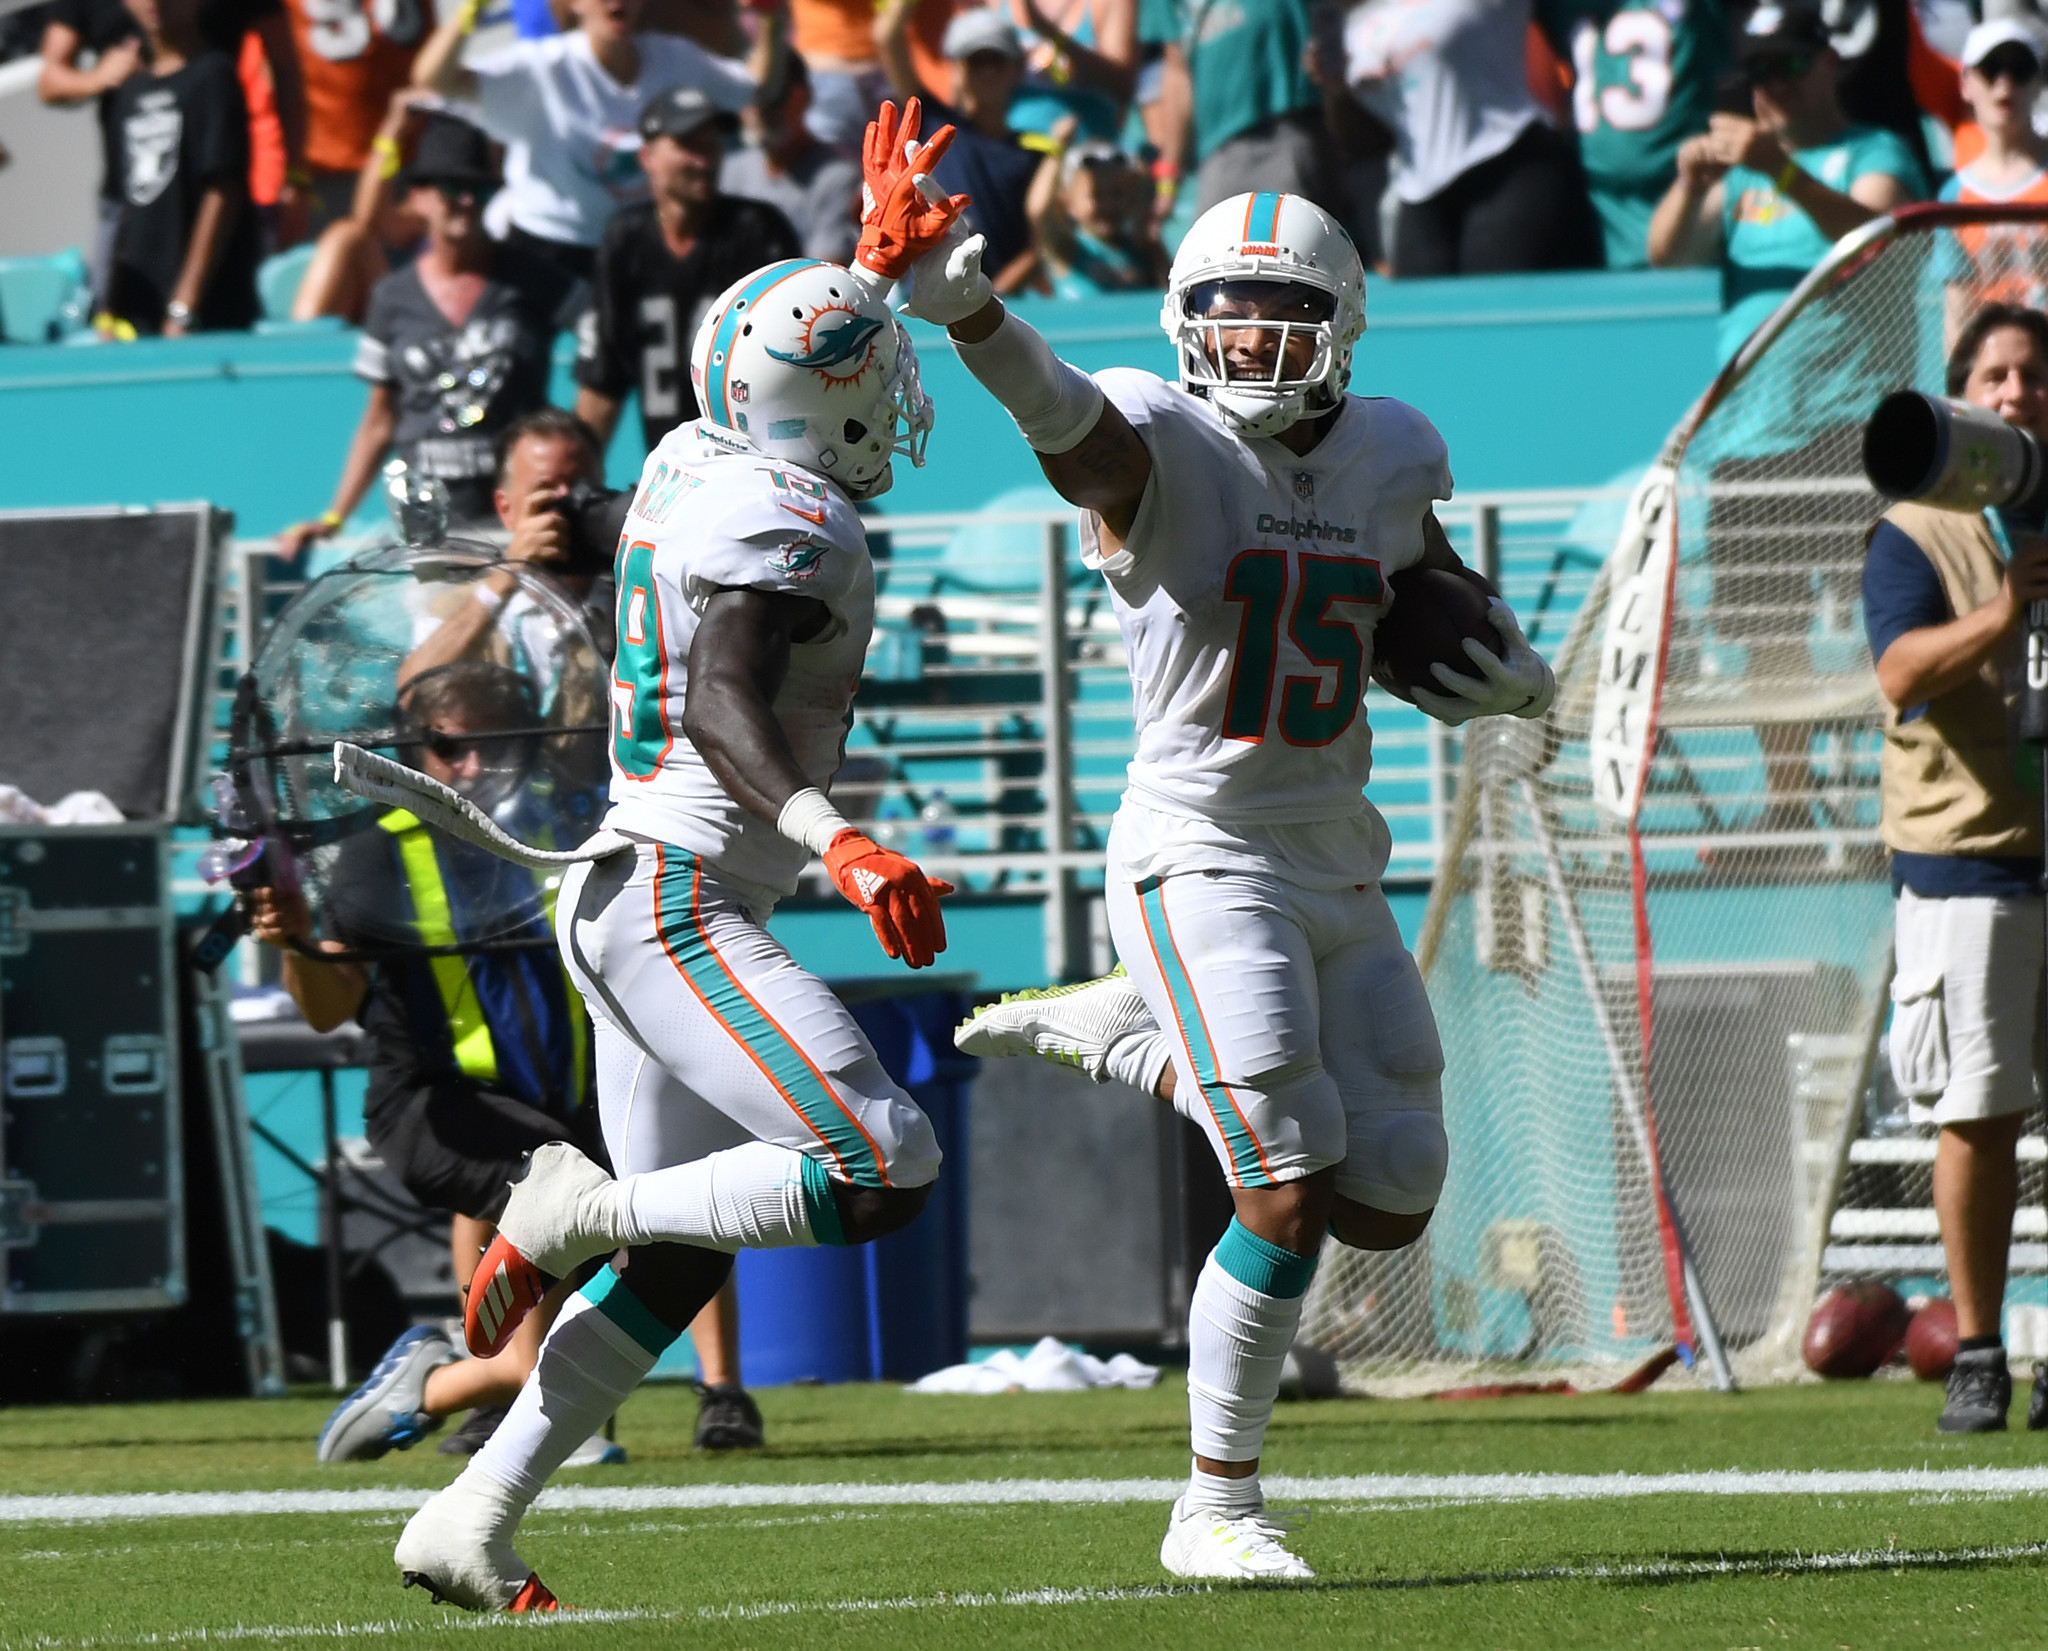 Sfl-20-things-we-learned-oakland-raiders-at-miami-dolphins-20180921